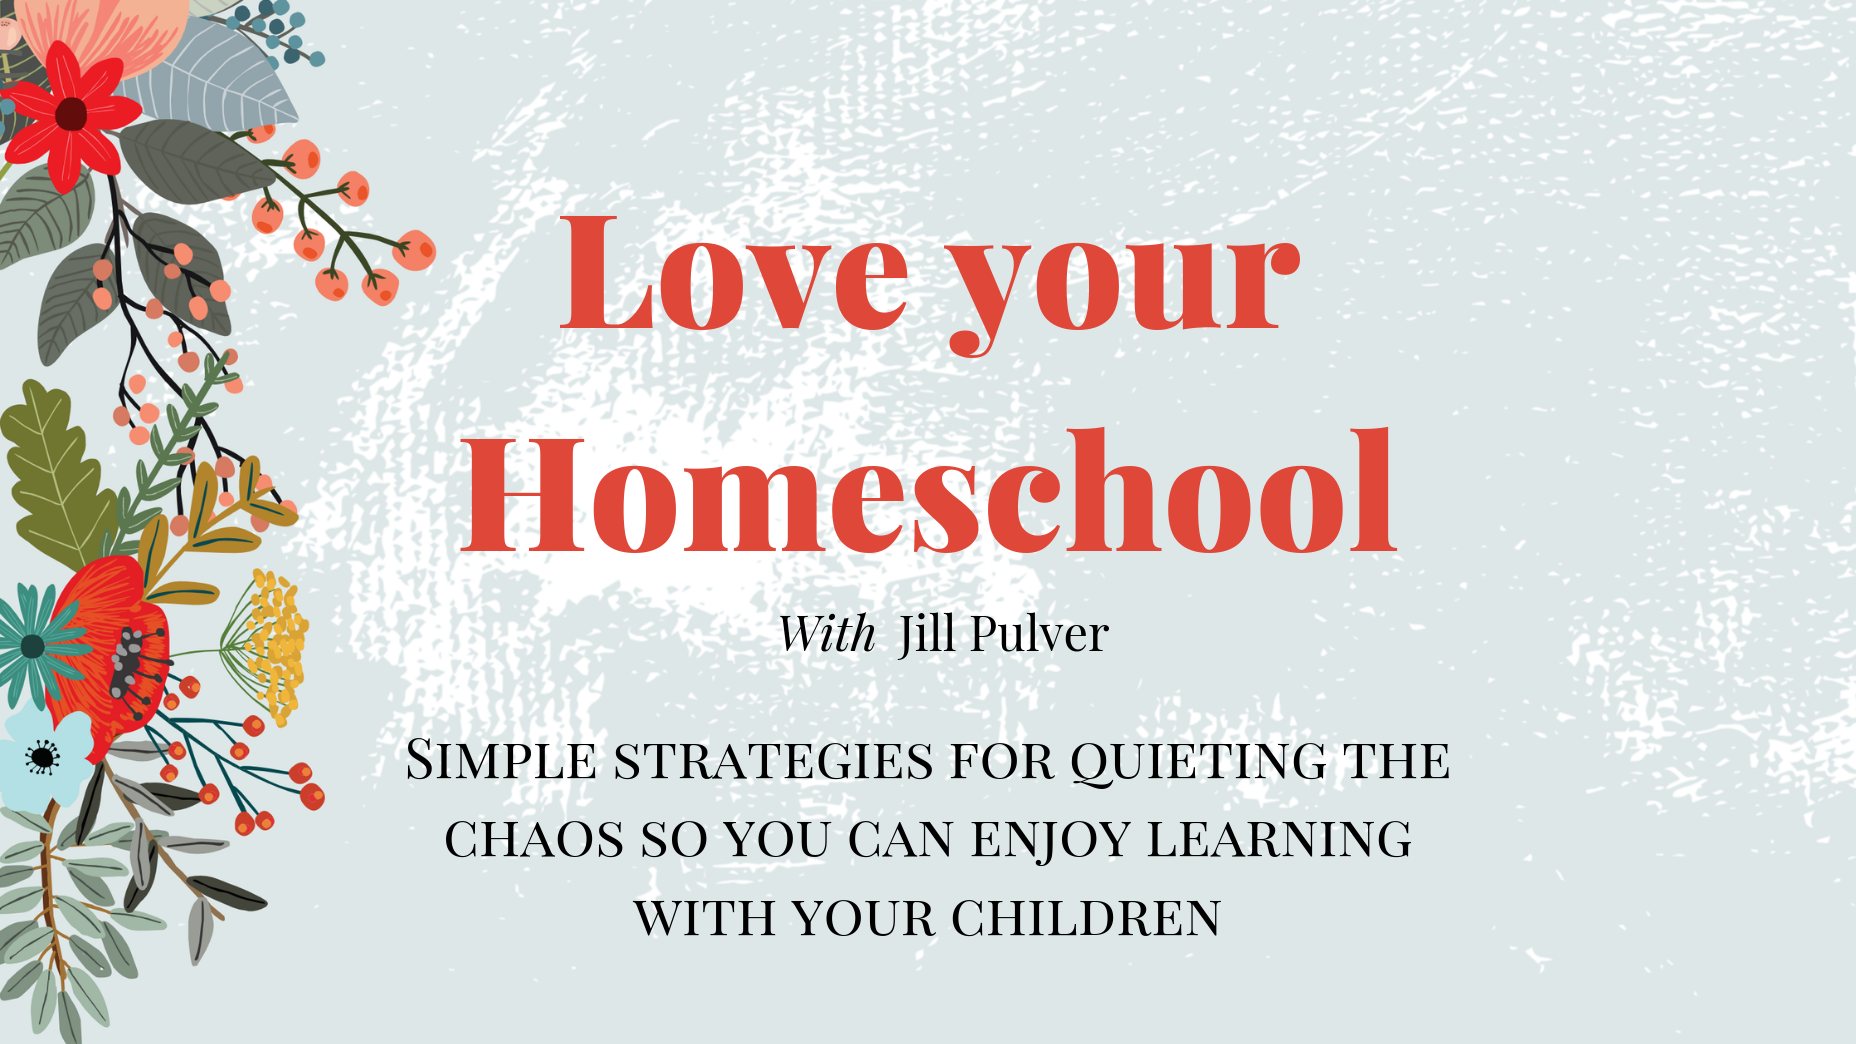 Copy of Love your Homeschool logo.png